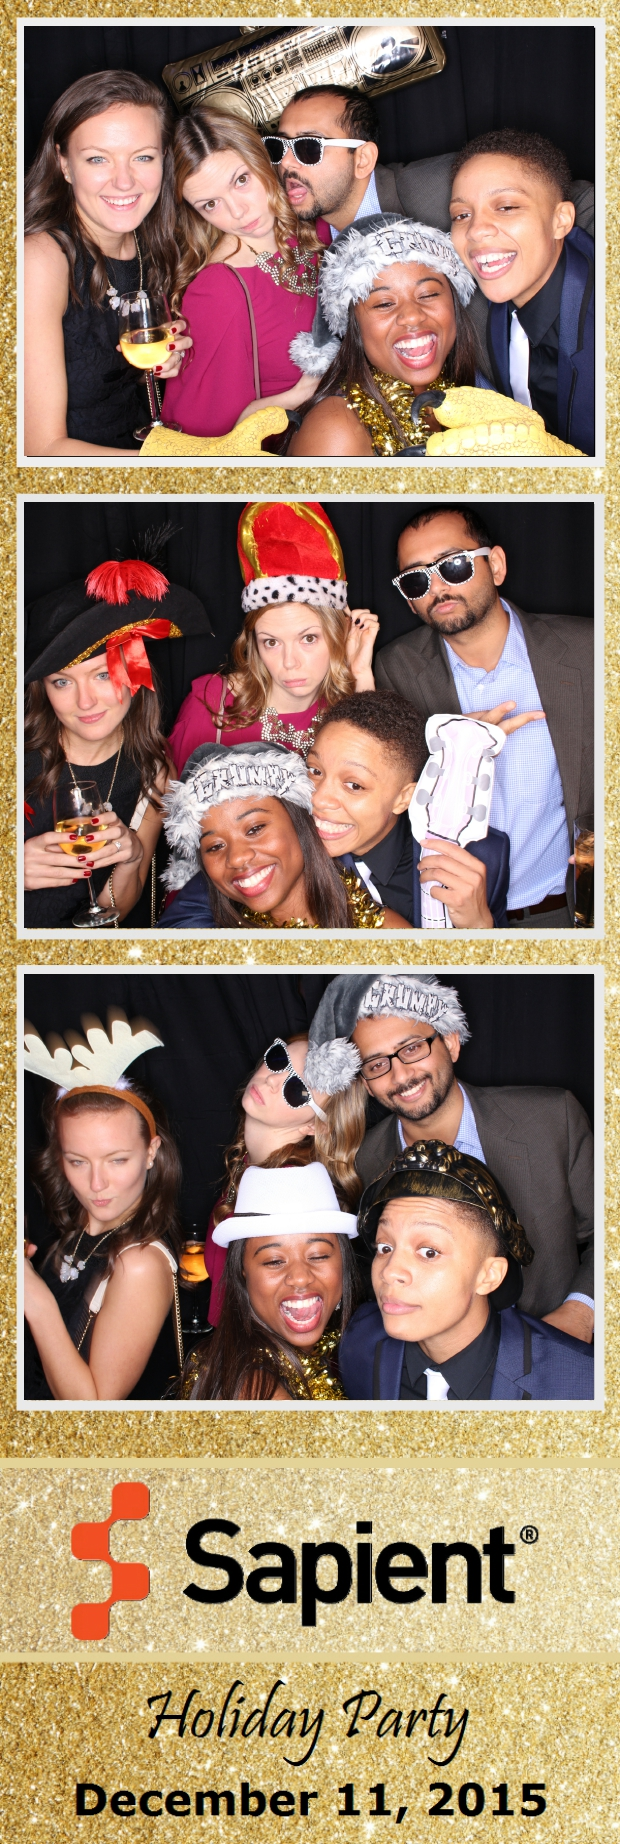 Guest House Events Photo Booth Sapient Holiday Party (65).jpg